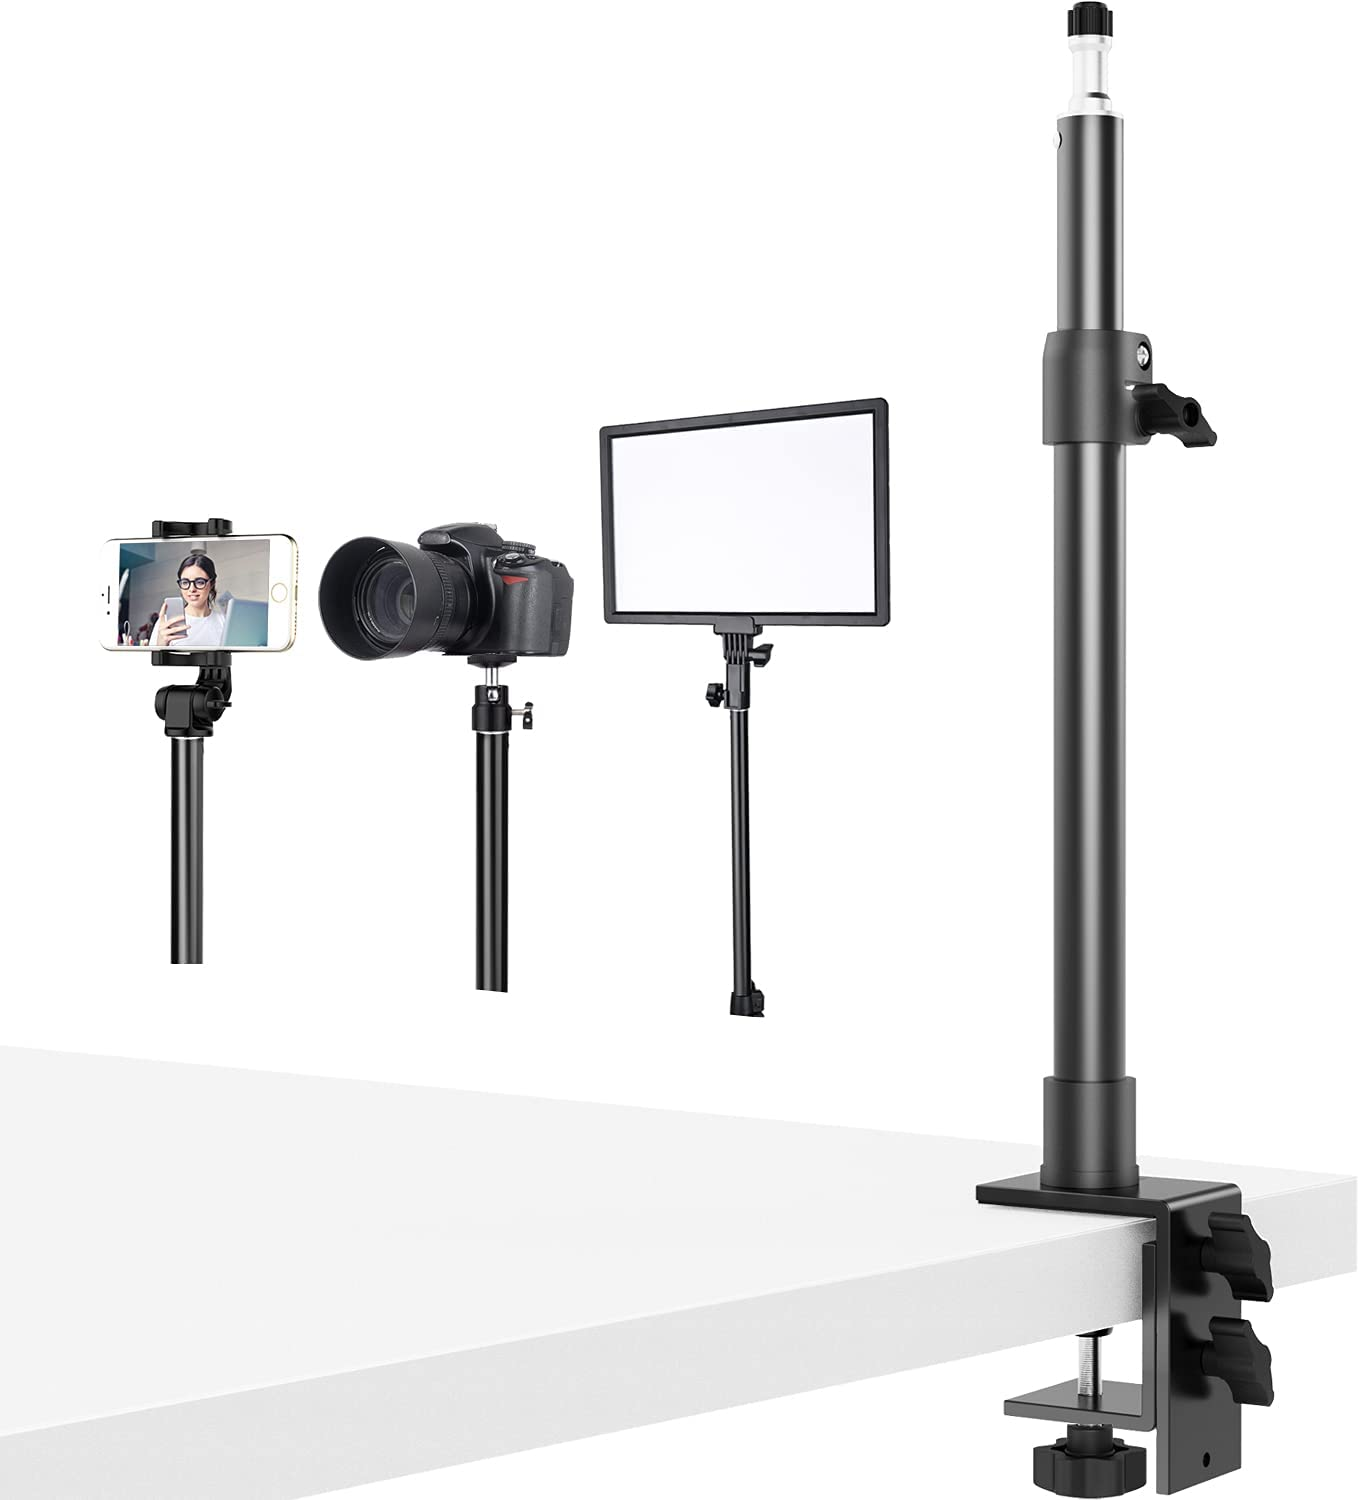 Yesker Sale Special Price Heavy Duty Desk Mount Stand to Sale 13.2